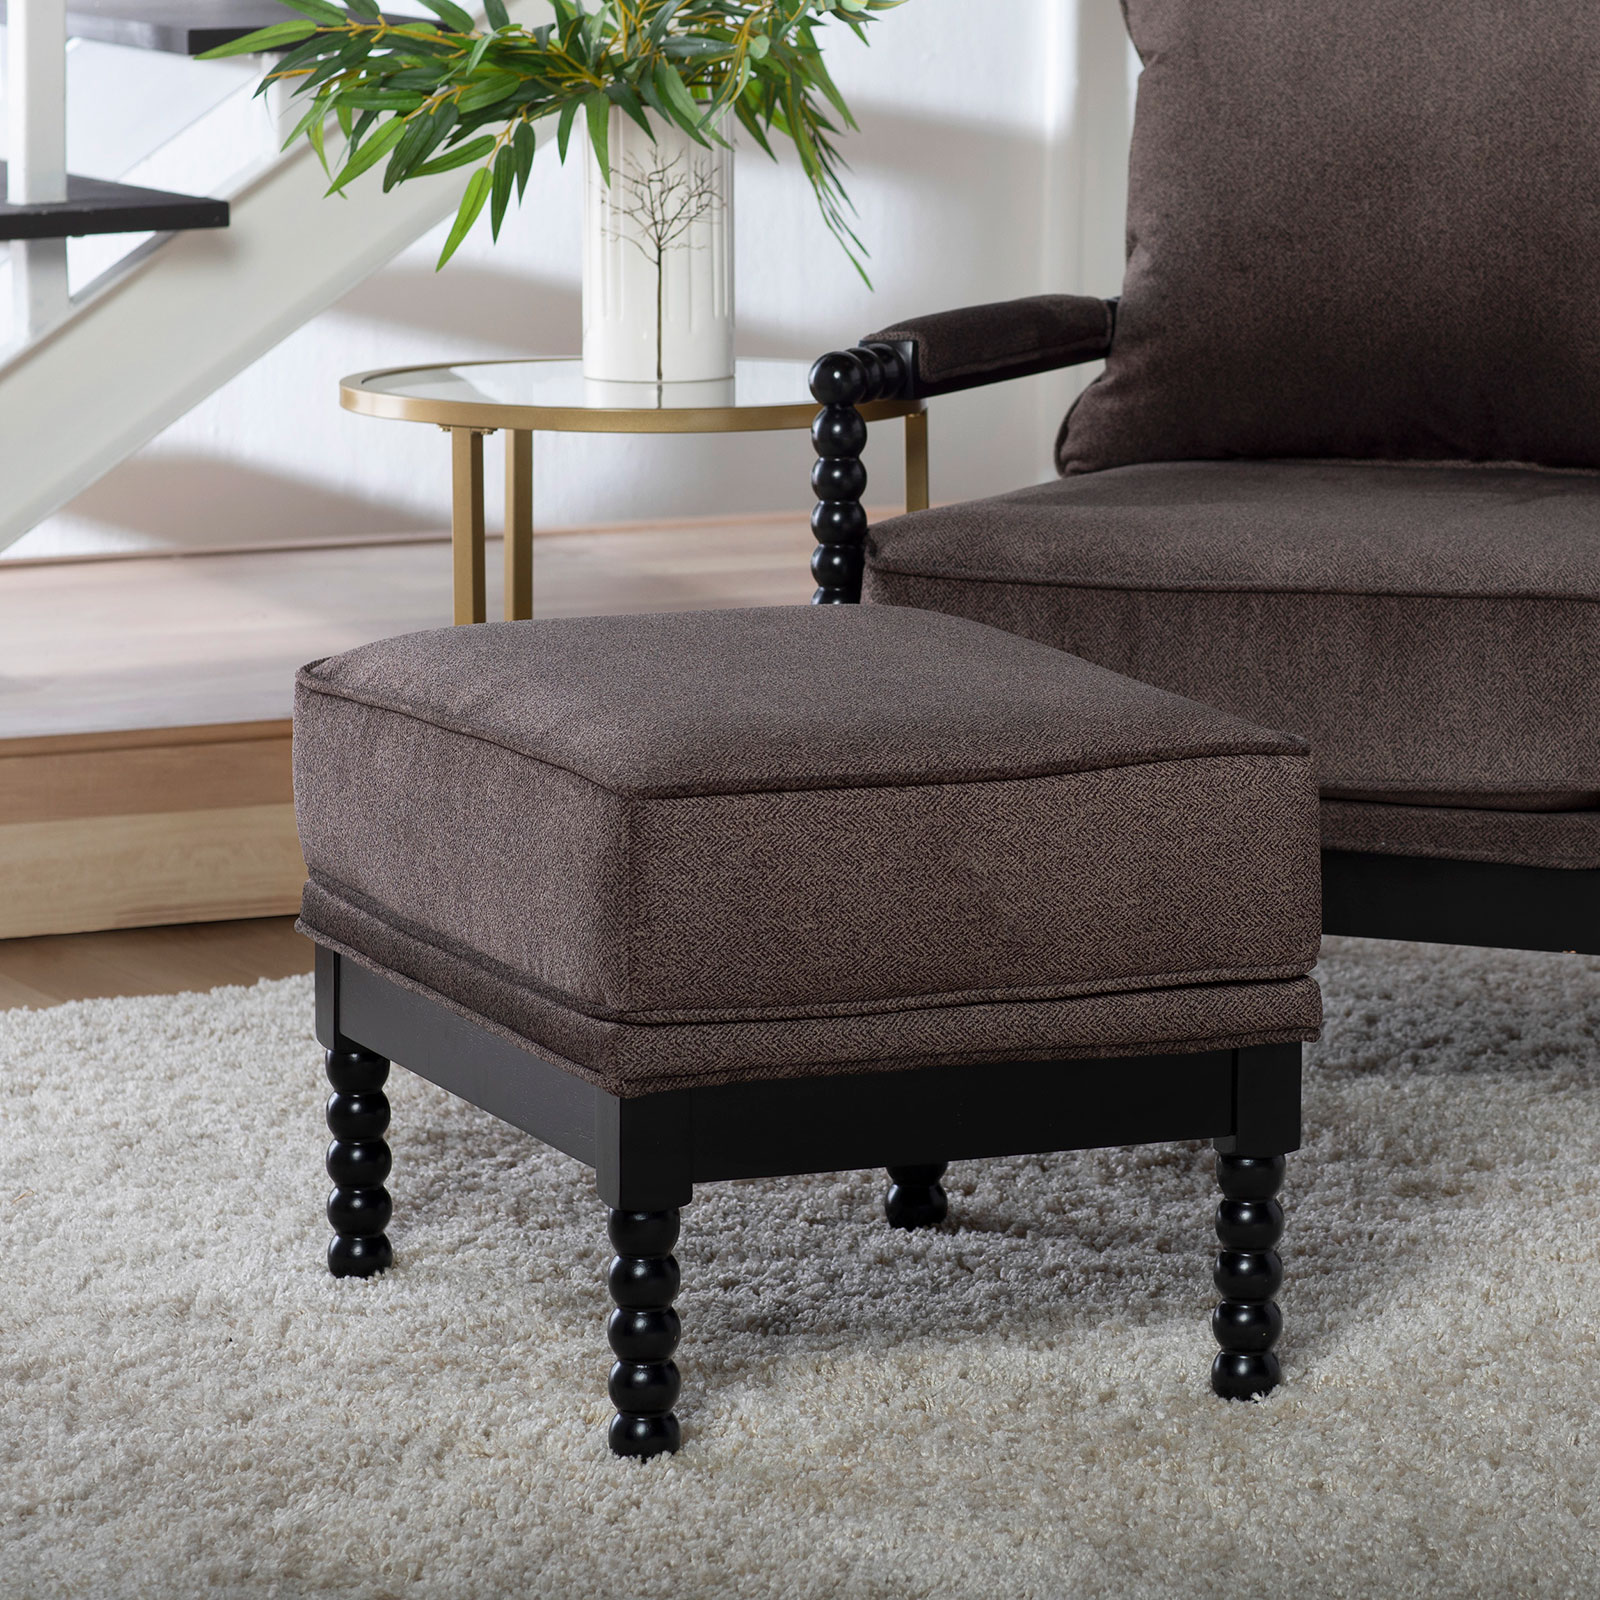 72038-Colonnade-Spindle-Ottoman-RS1a